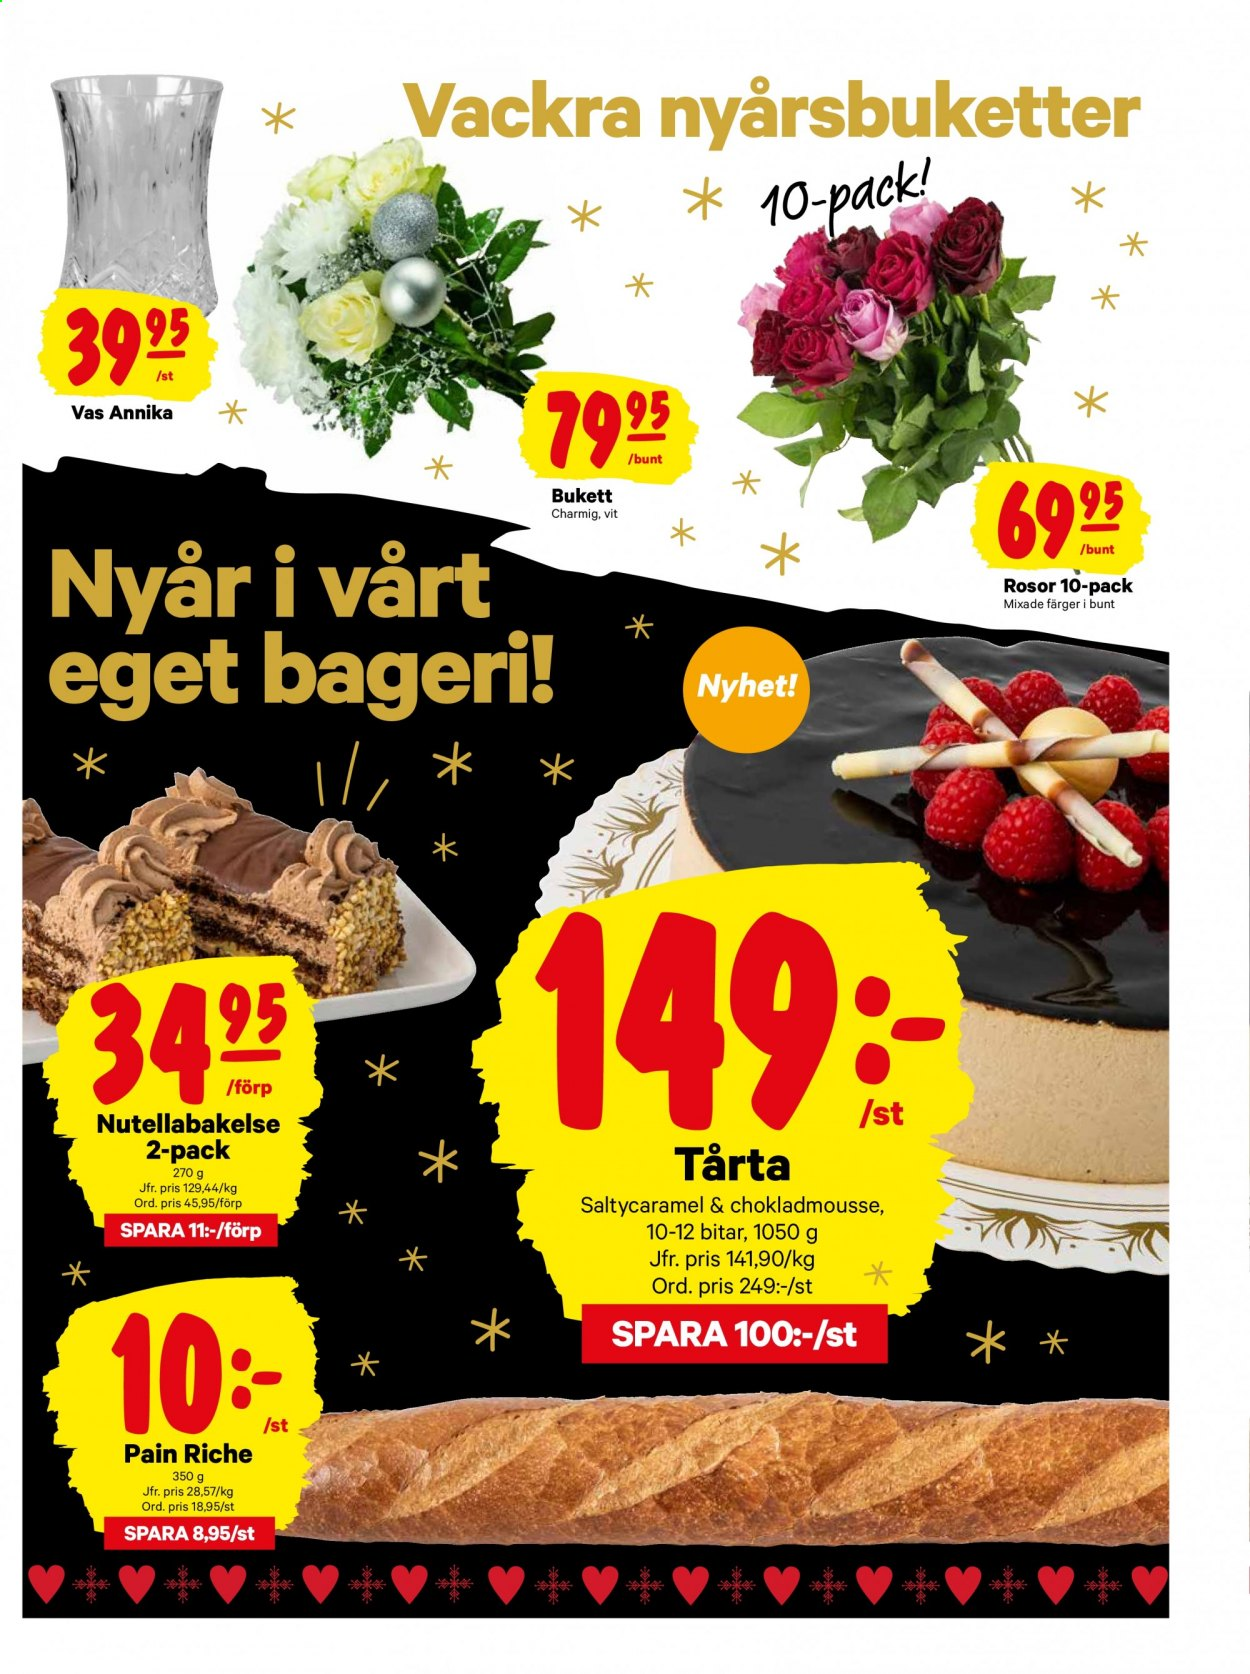 City Gross reklamblad - 29/12 2020 - 3/1 2021. Sida 9.